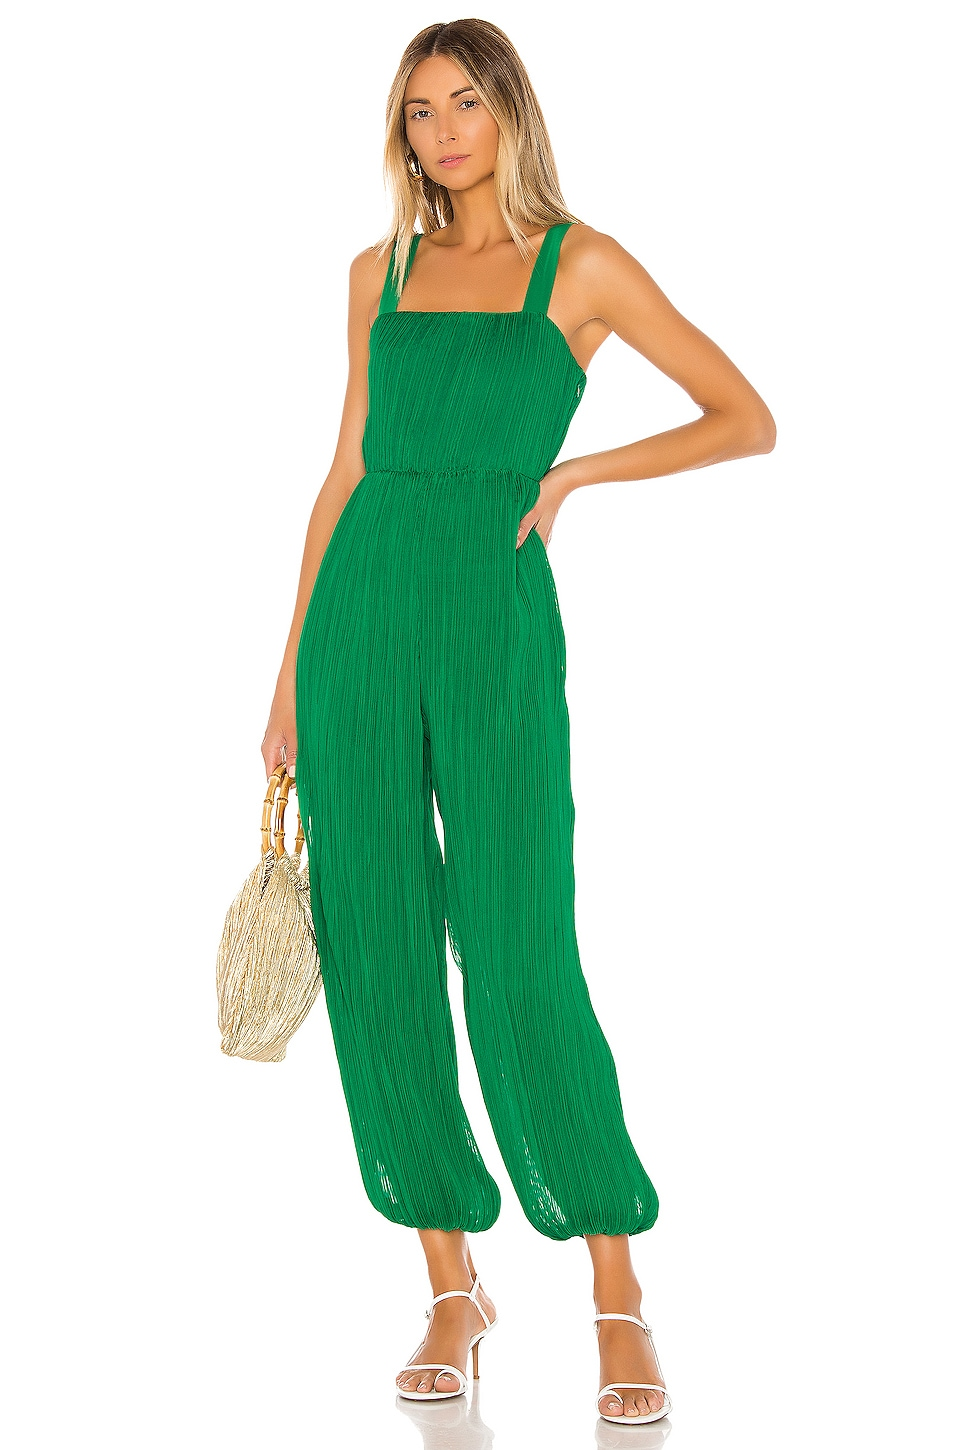 House of Harlow 1960 X REVOLVE Alandra Jumpsuit in Kelly Green